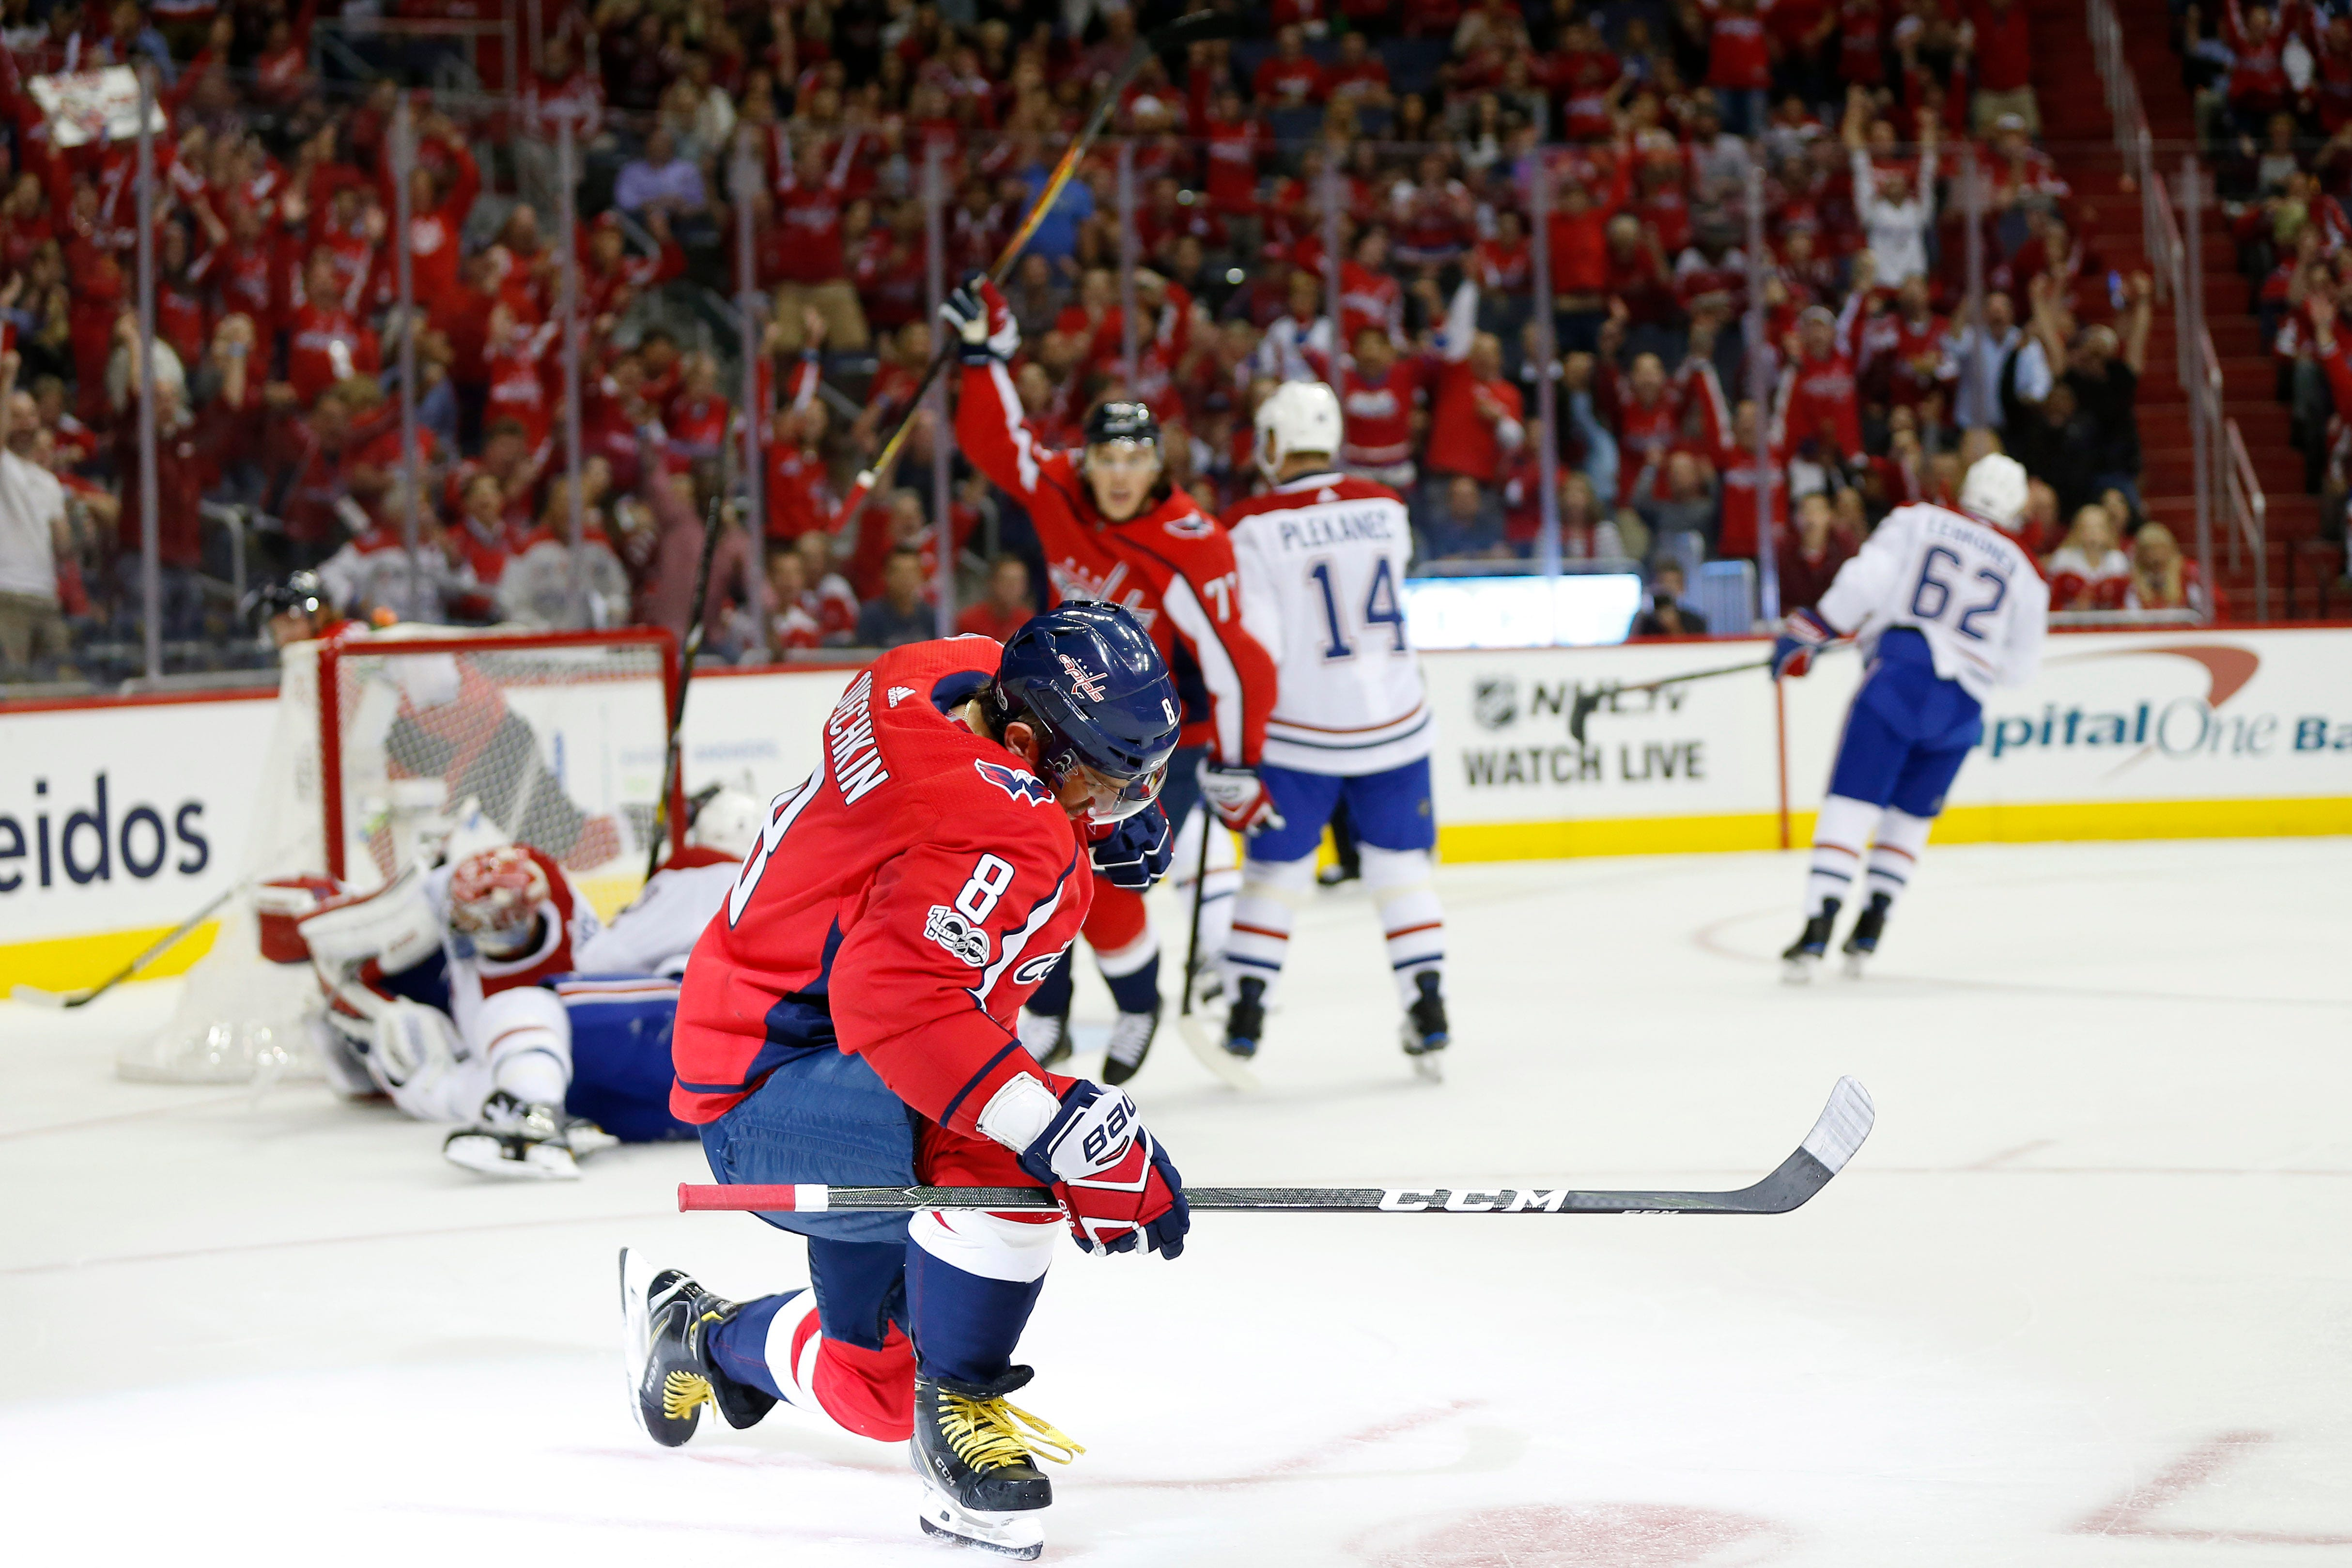 Alex Ovechkin ties Capitals record with historic hat trick